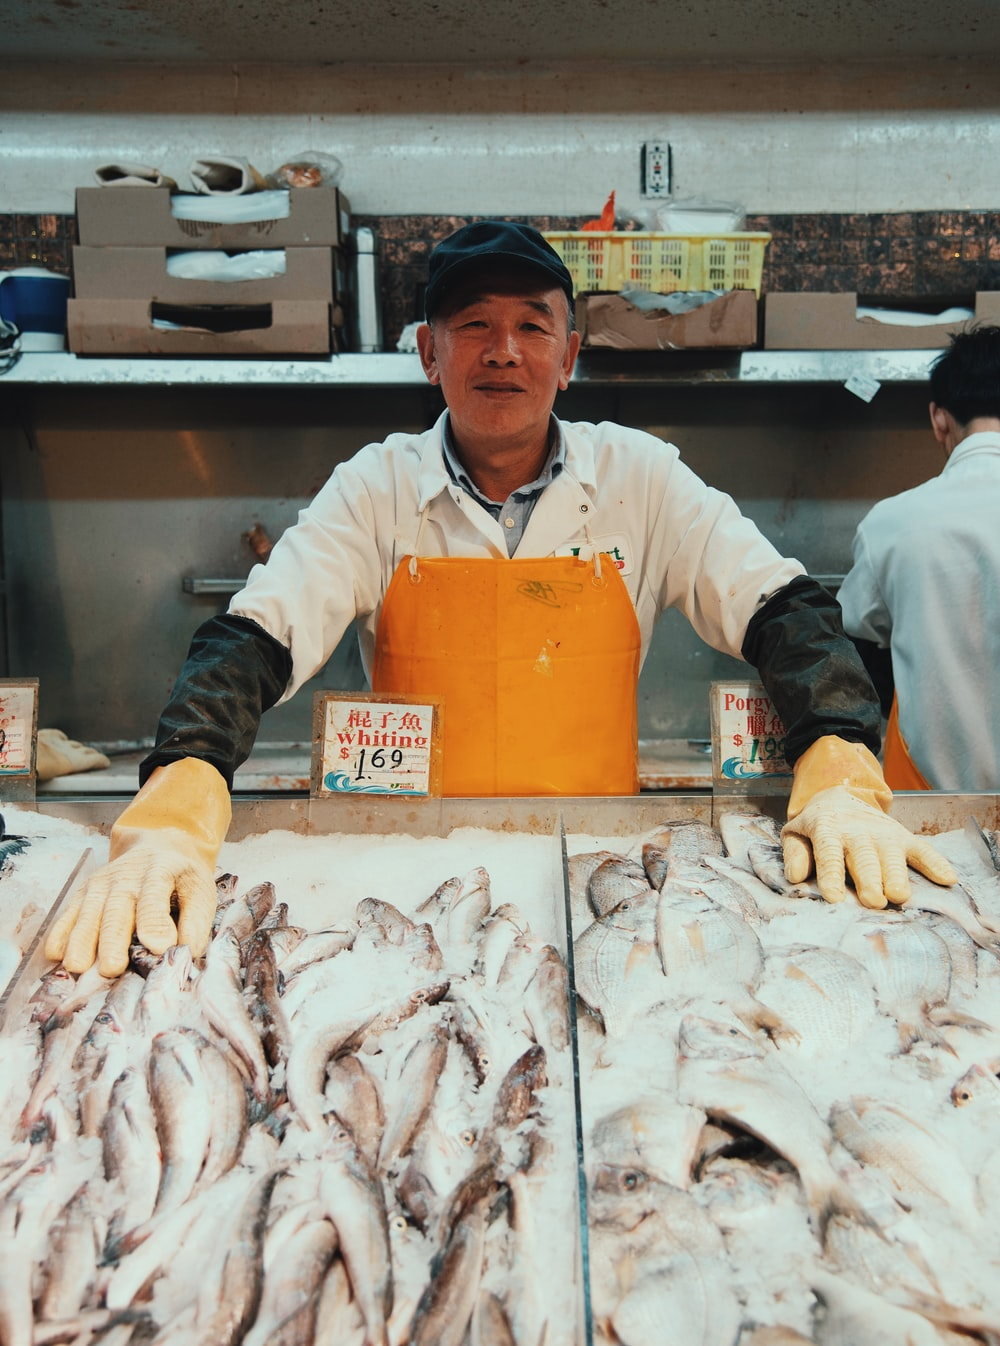 man wearing white polo shirt and brown apron standing near fish stands